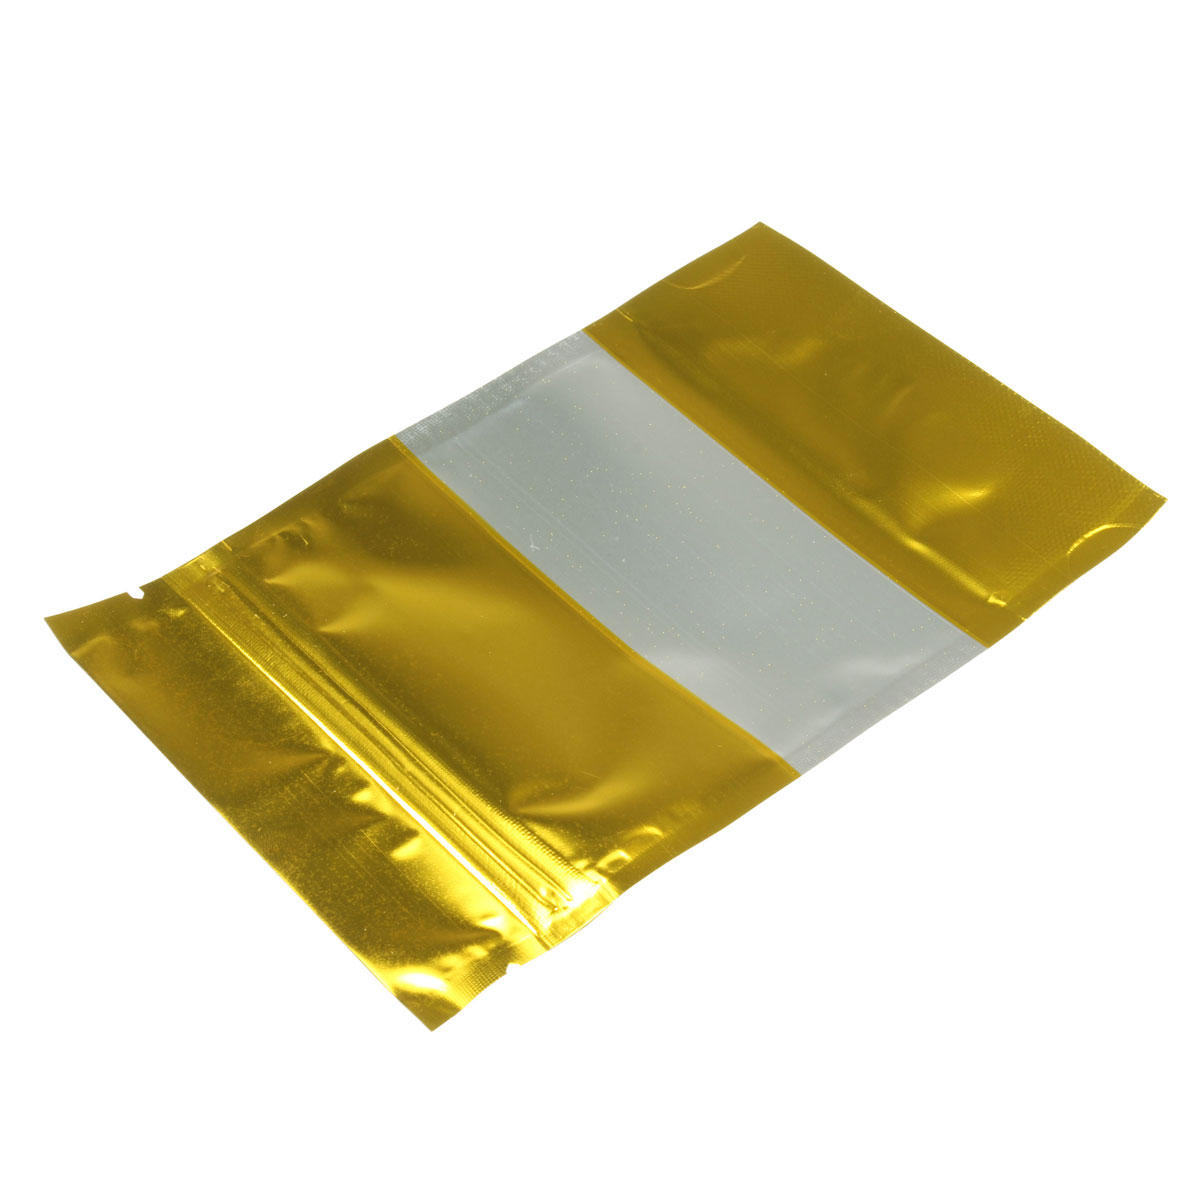 Ziplock Bags Australia 100pcs Gold Aluminum Foil Stand Up Bags Zip Lock Mylar Pouches With Window Food Grade